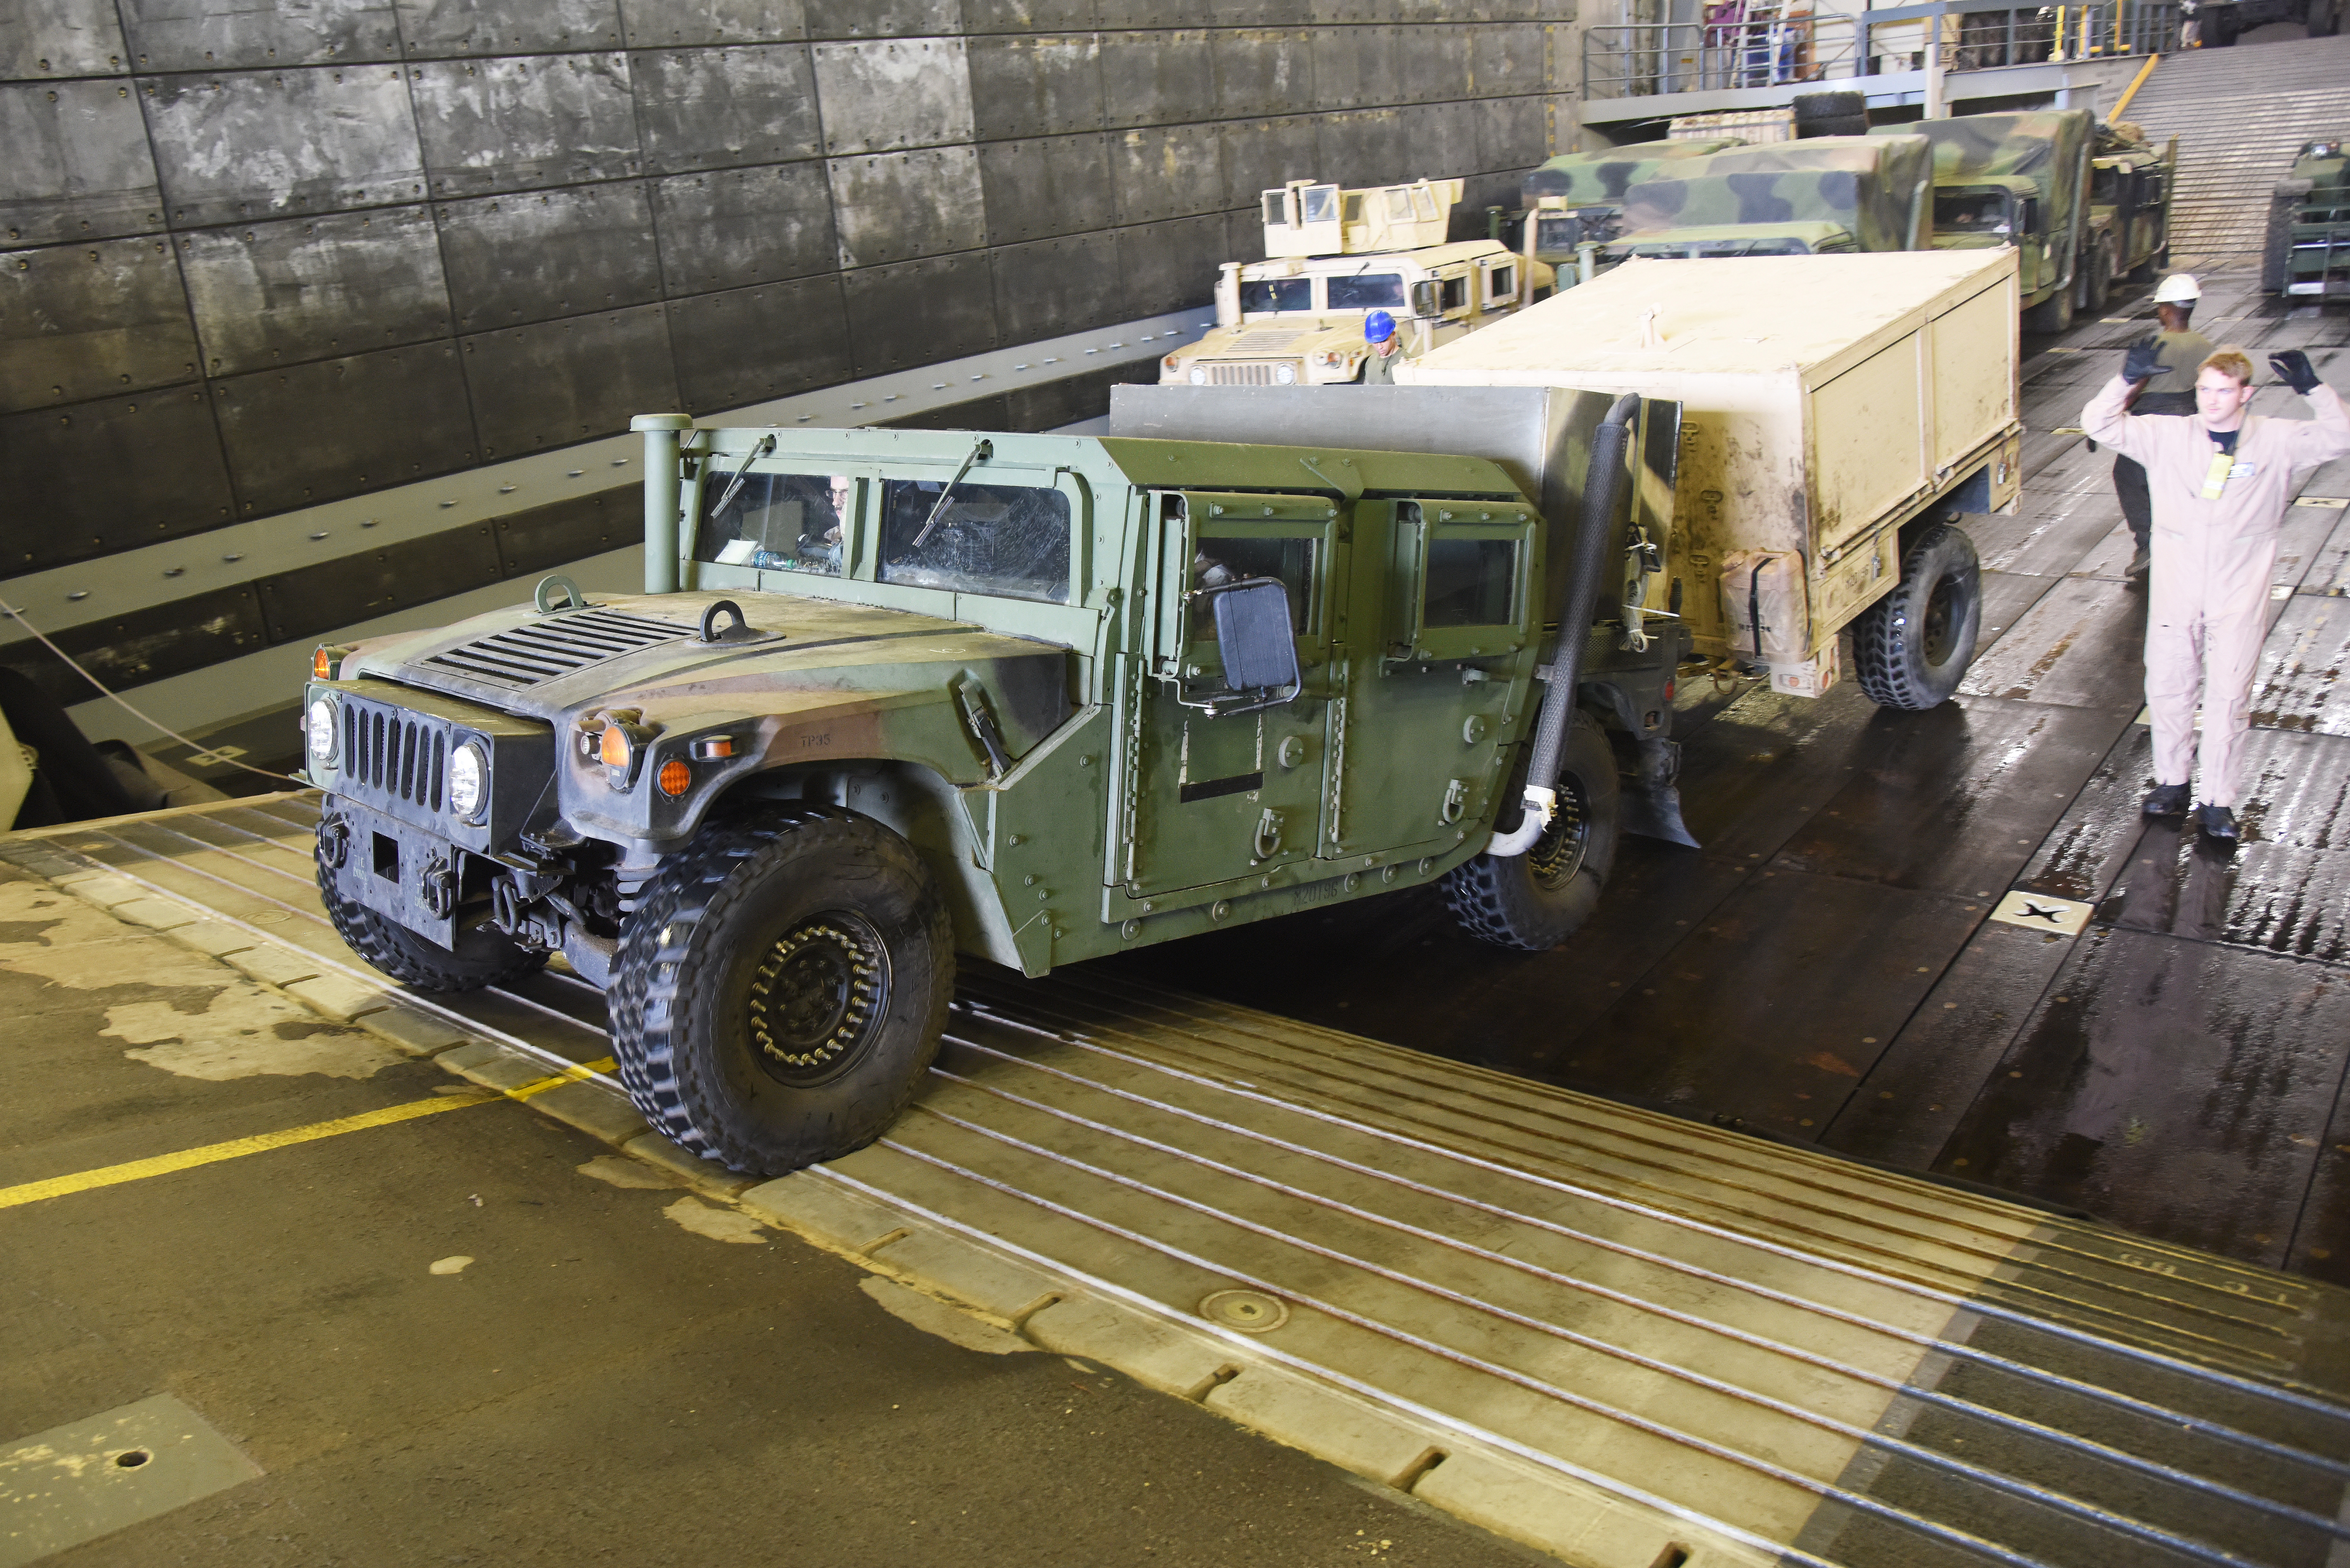 A U.S. Marine HMMWV loads onto a U.S. Navy Landing Craft Air Cushion (LCAC) in Arta, Djibouti, July 20, 2015.  Marine HMMWVs serve as command and control, troop transport, shelter carrier, towed weapons mover, and can be used as an ambulance. (U.S. Air Force photo by Staff Sgt. Maria Bowman)